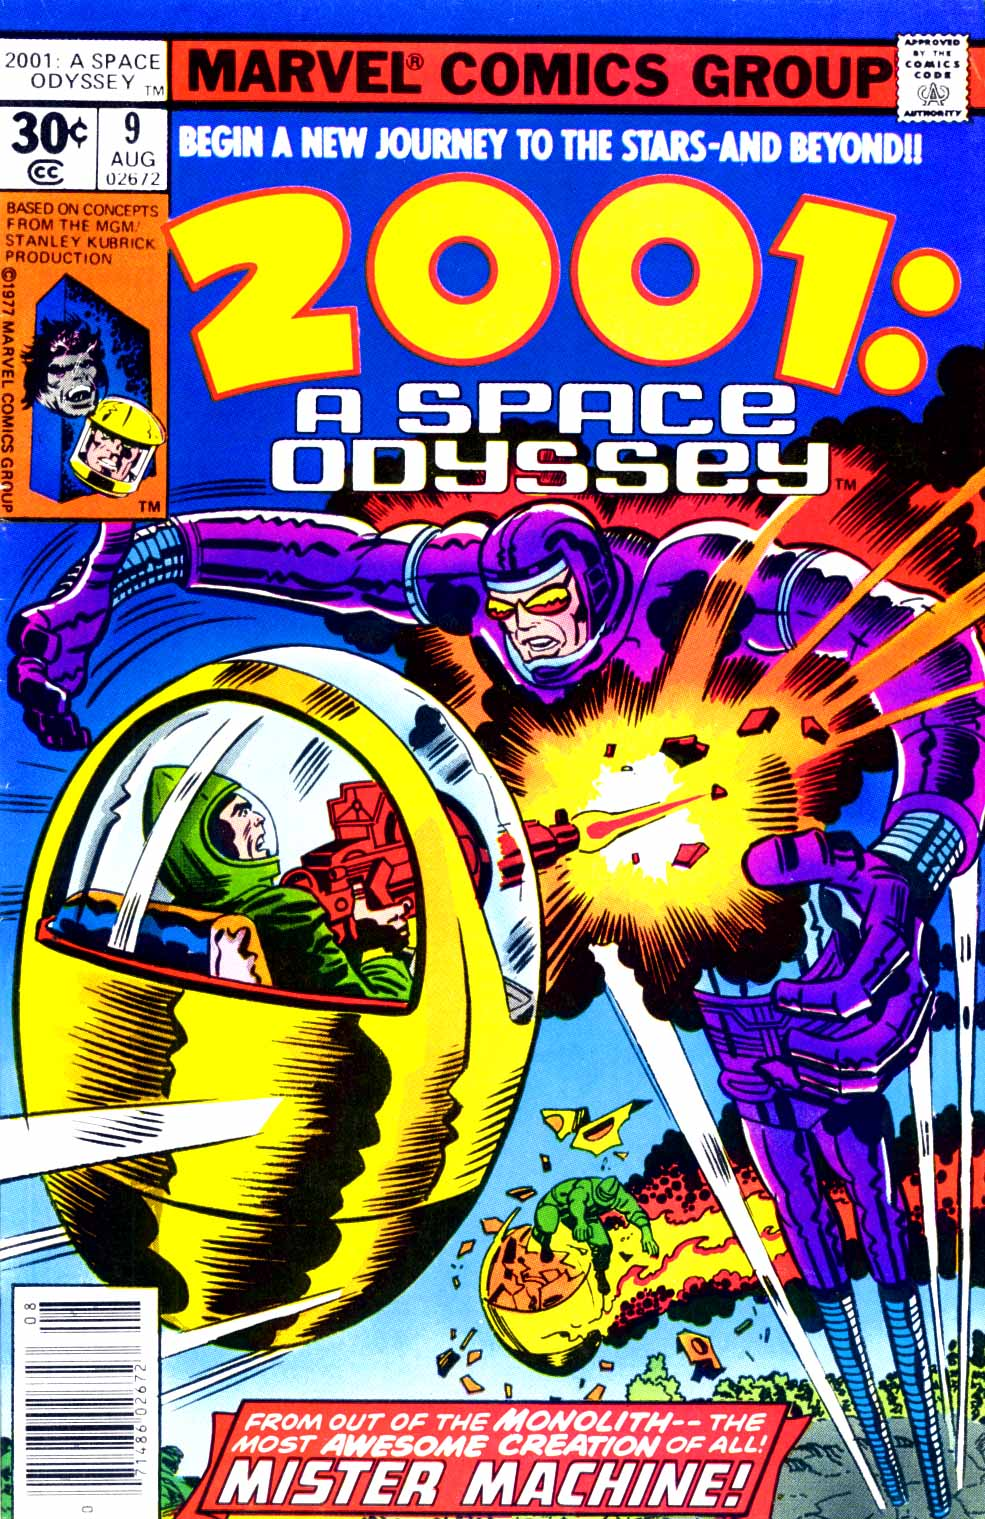 2001: A Space Odyssey (1976) #9, cover penciled by Jack Kirby & inked by Mike Royer.